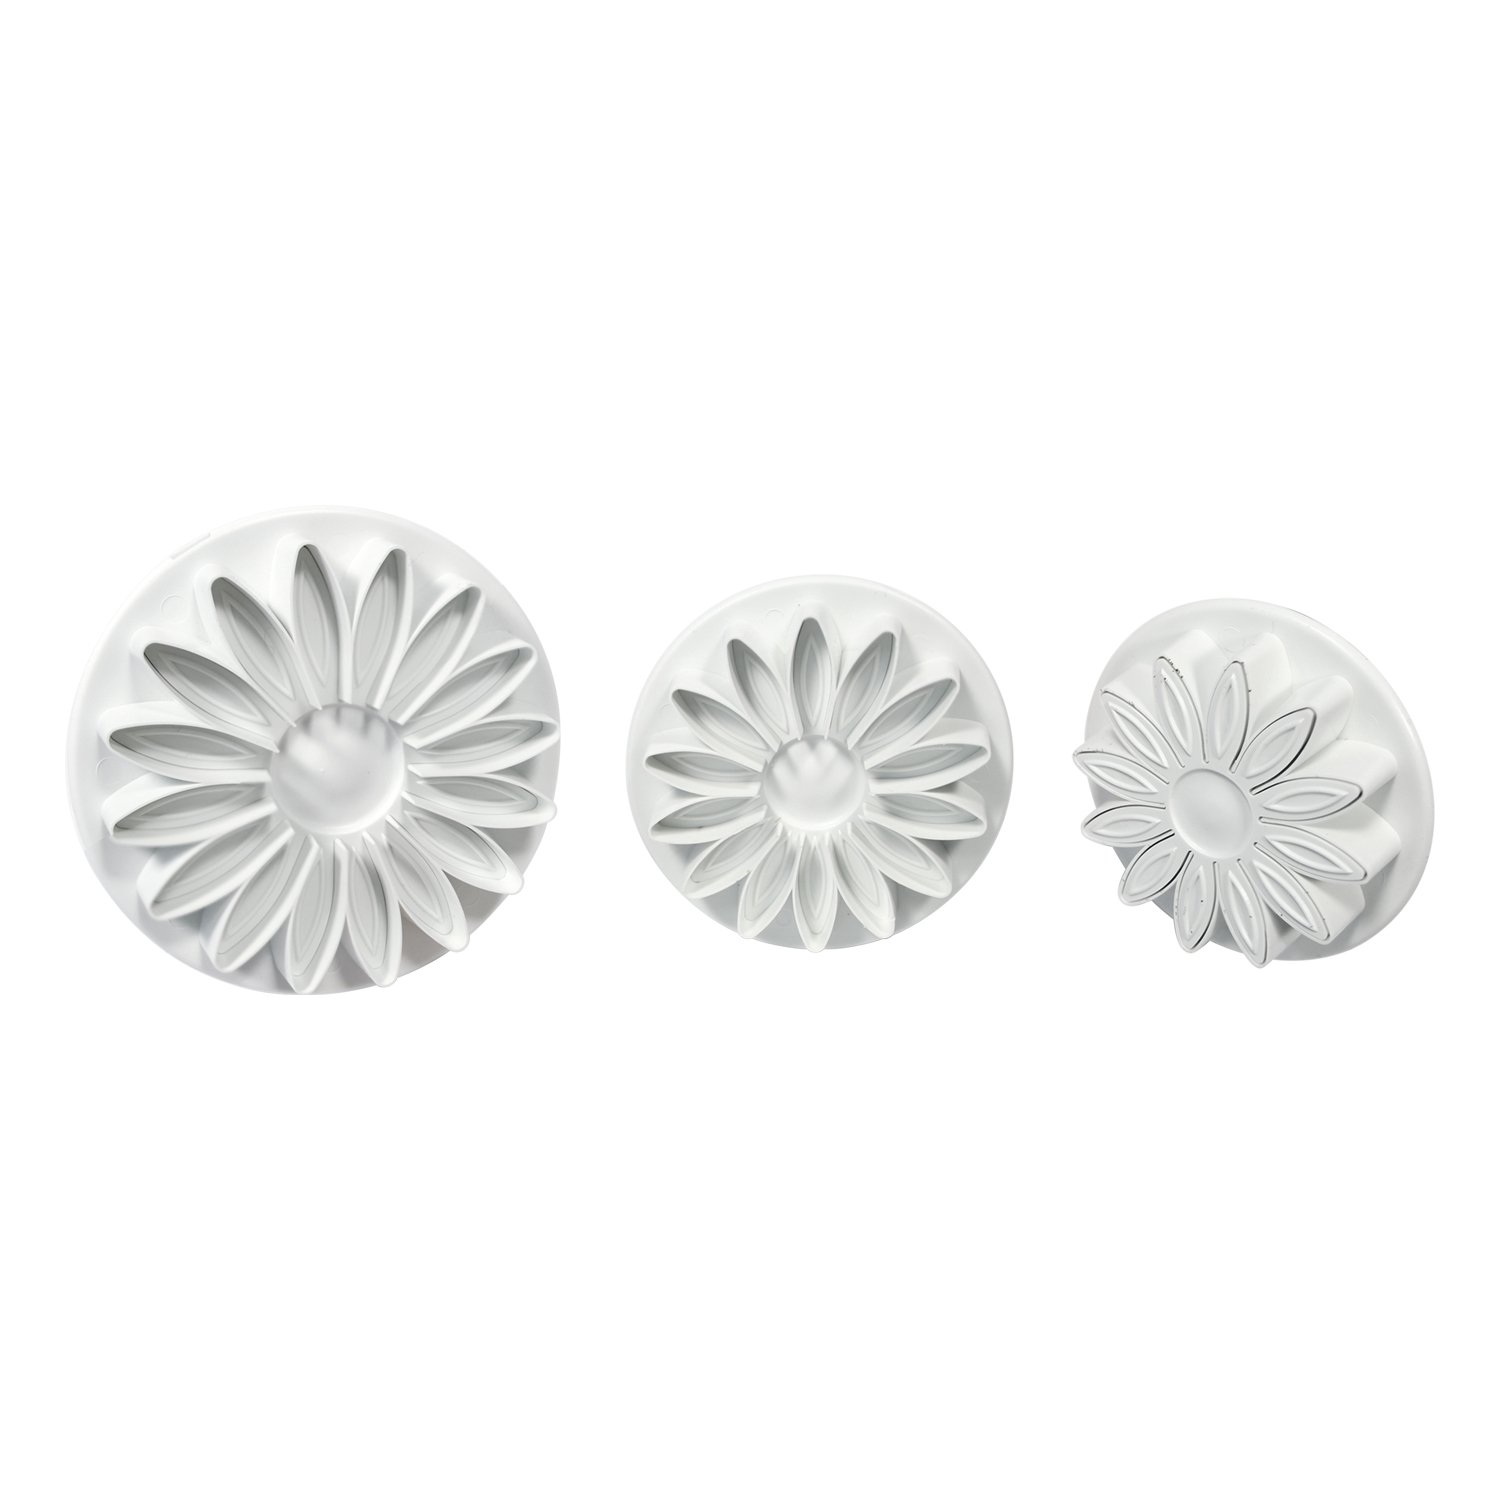 PME Plunger Cutters, Veined Sunflower Daisy and Gerbera, 3-Pack Knightsbridge Global Ltd. SD618